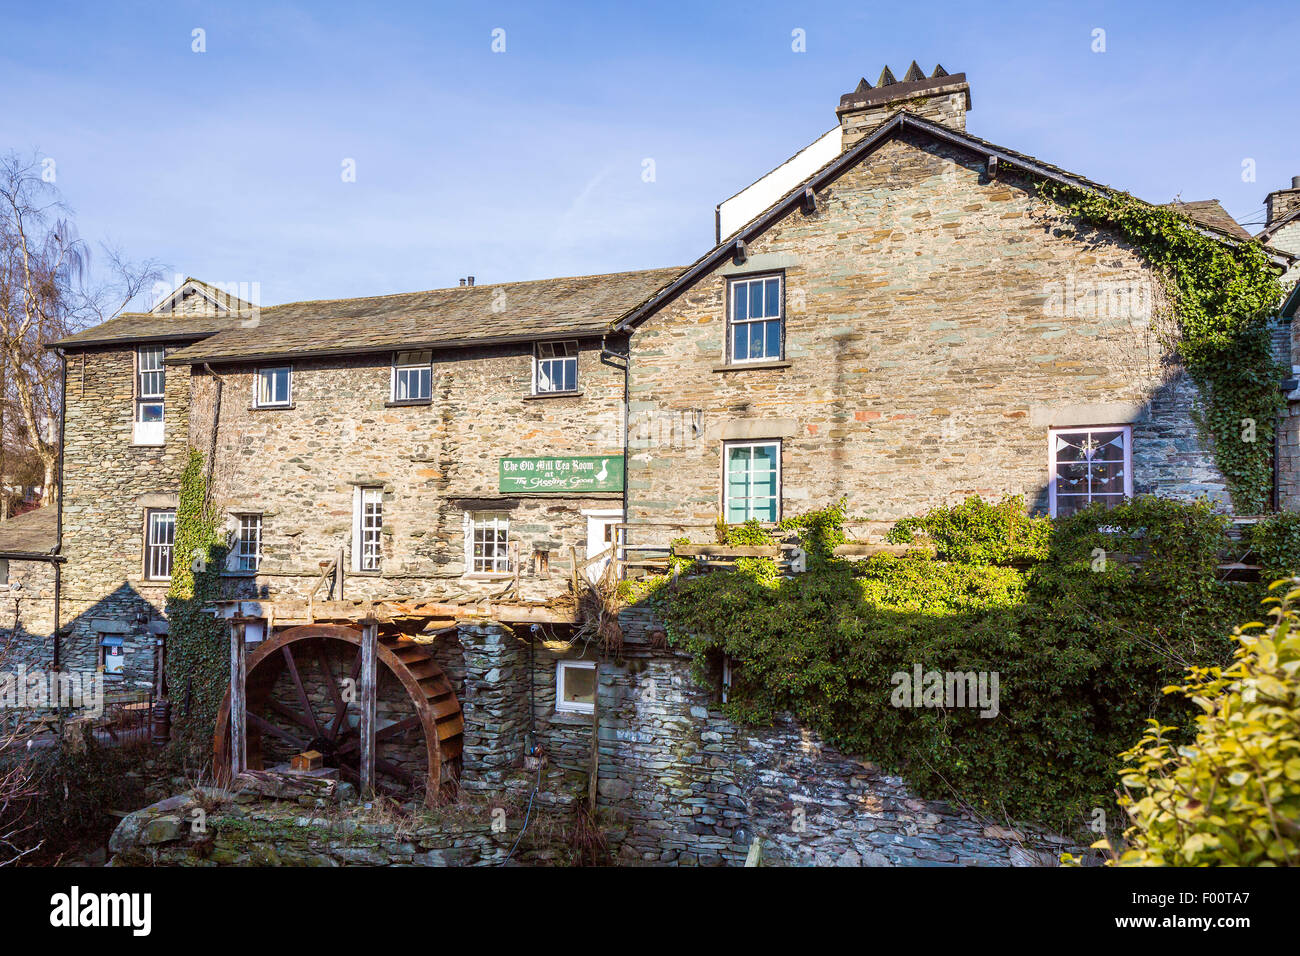 Old Mill, Ambleside, Lake District National Park, Cumbria, England, United Kingdom, Europe. - Stock Image